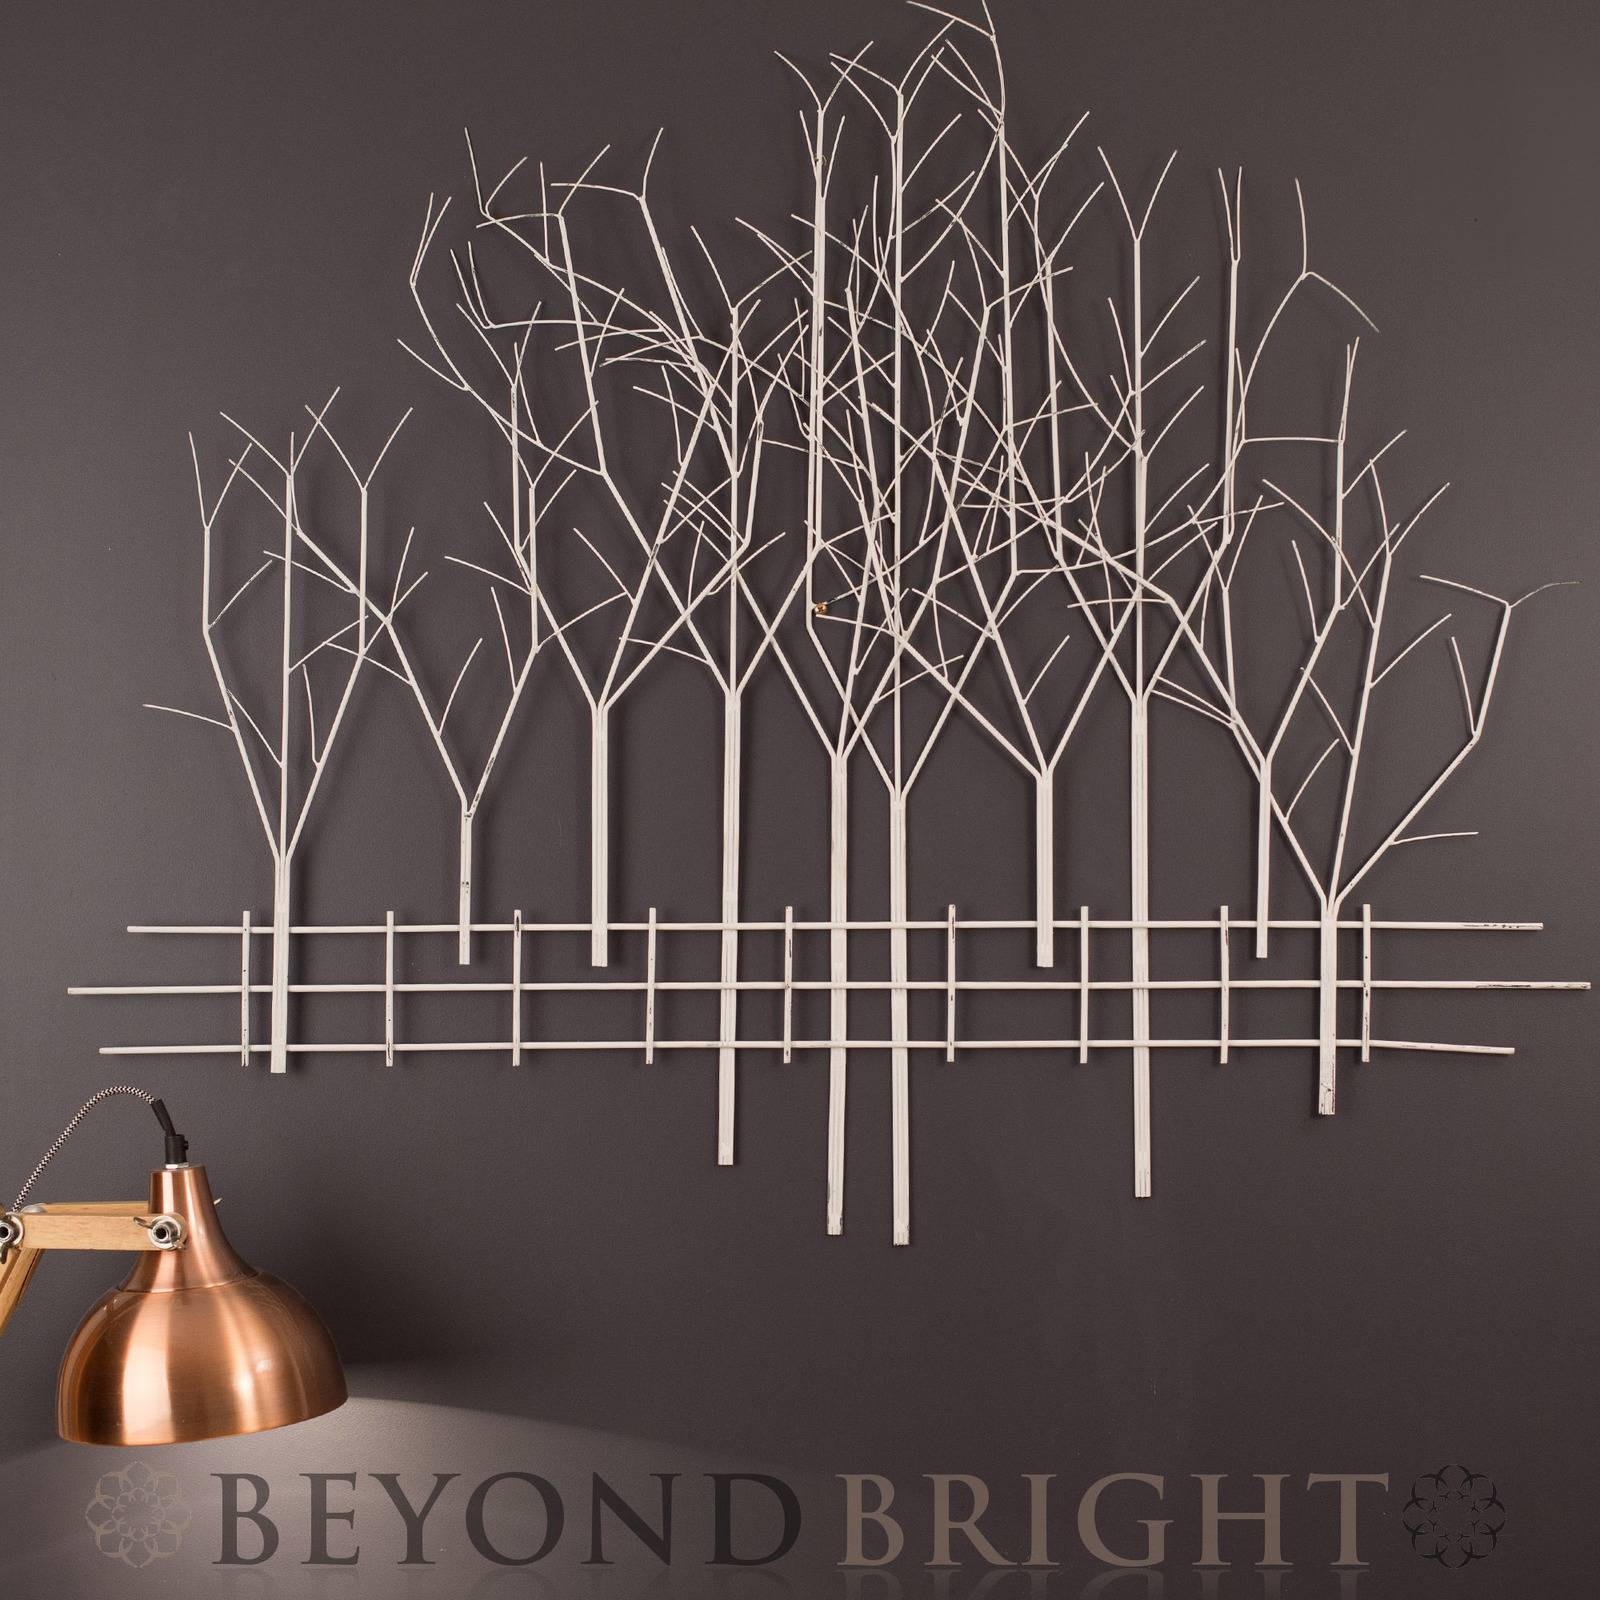 Winter Woodland Metal Wall Art | Modern – Vintage – Indoor With Regard To Latest Contemporary Metal Wall Art (View 19 of 20)